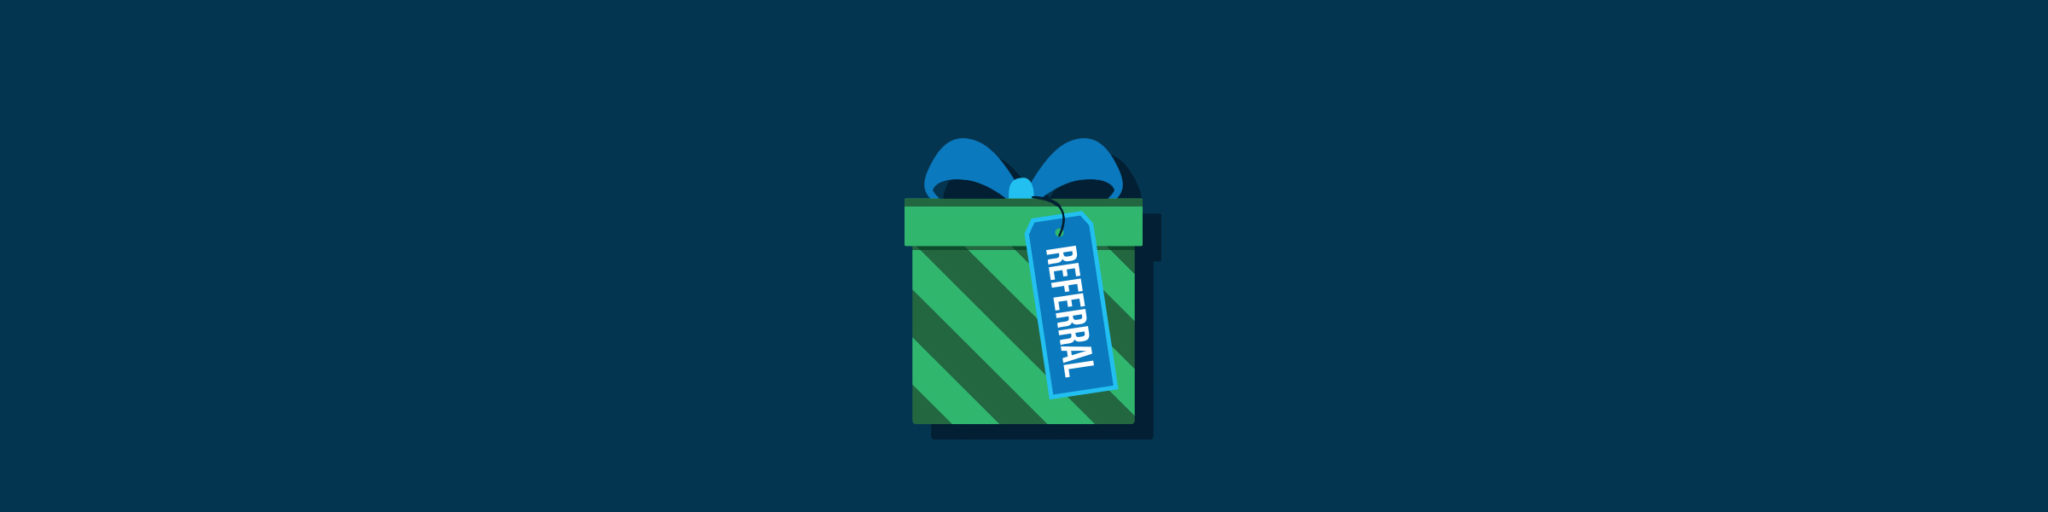 Tips HolidayReferrals Header